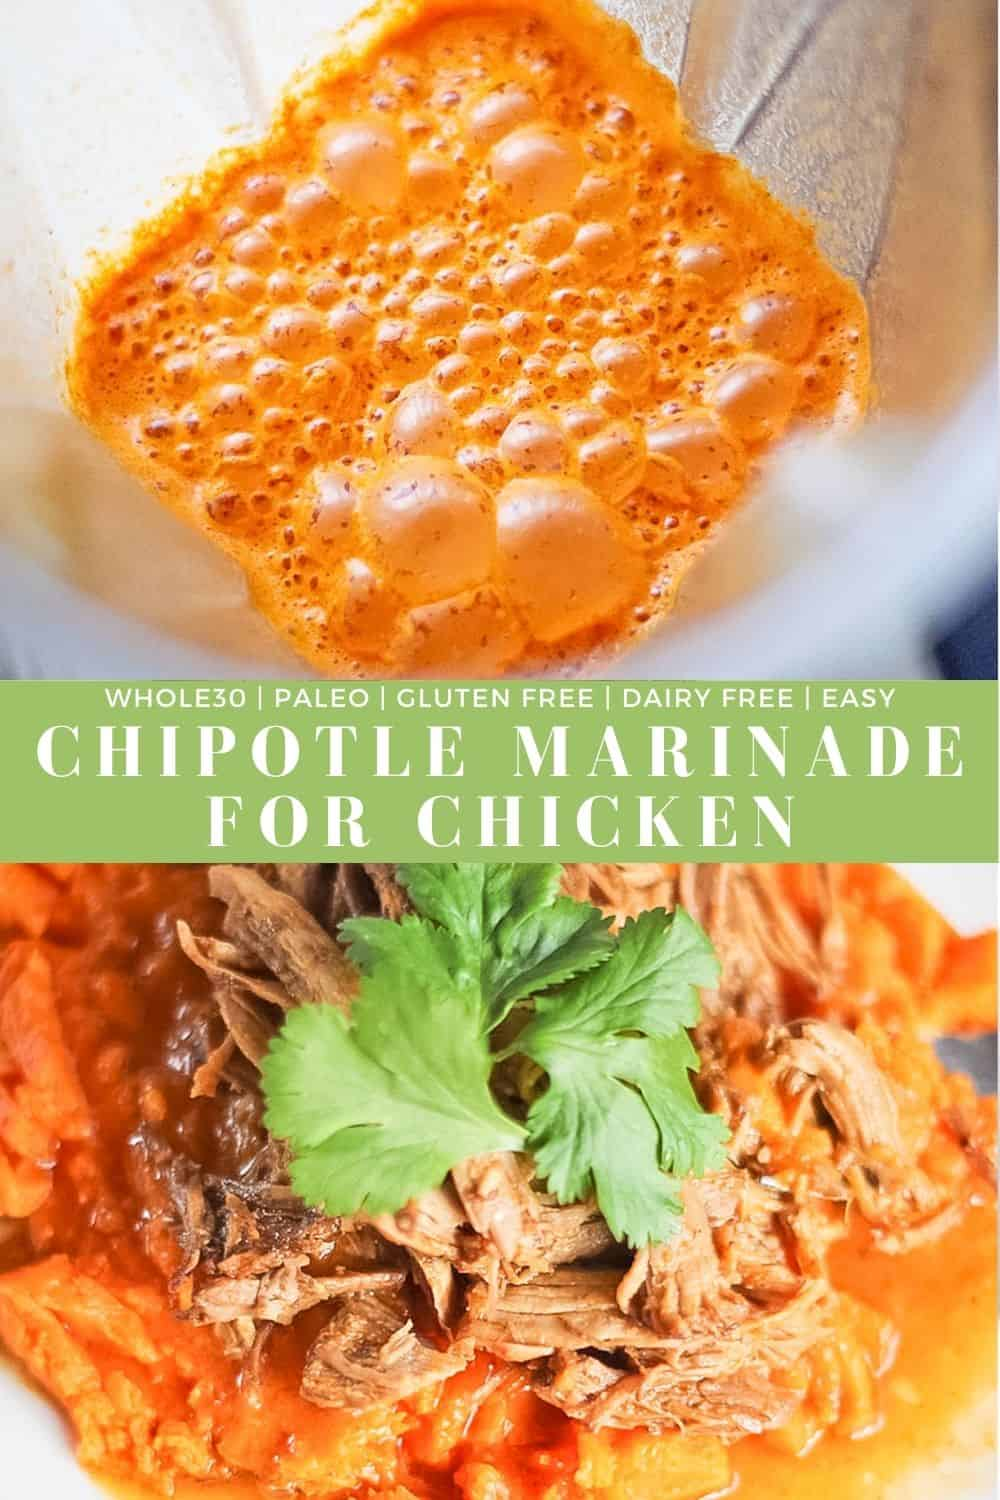 Two pictures combined, one of the chipotle marinade in a blender and the other of shredded pork in the chipotle marinade being served over a sweet potato with cilantro.